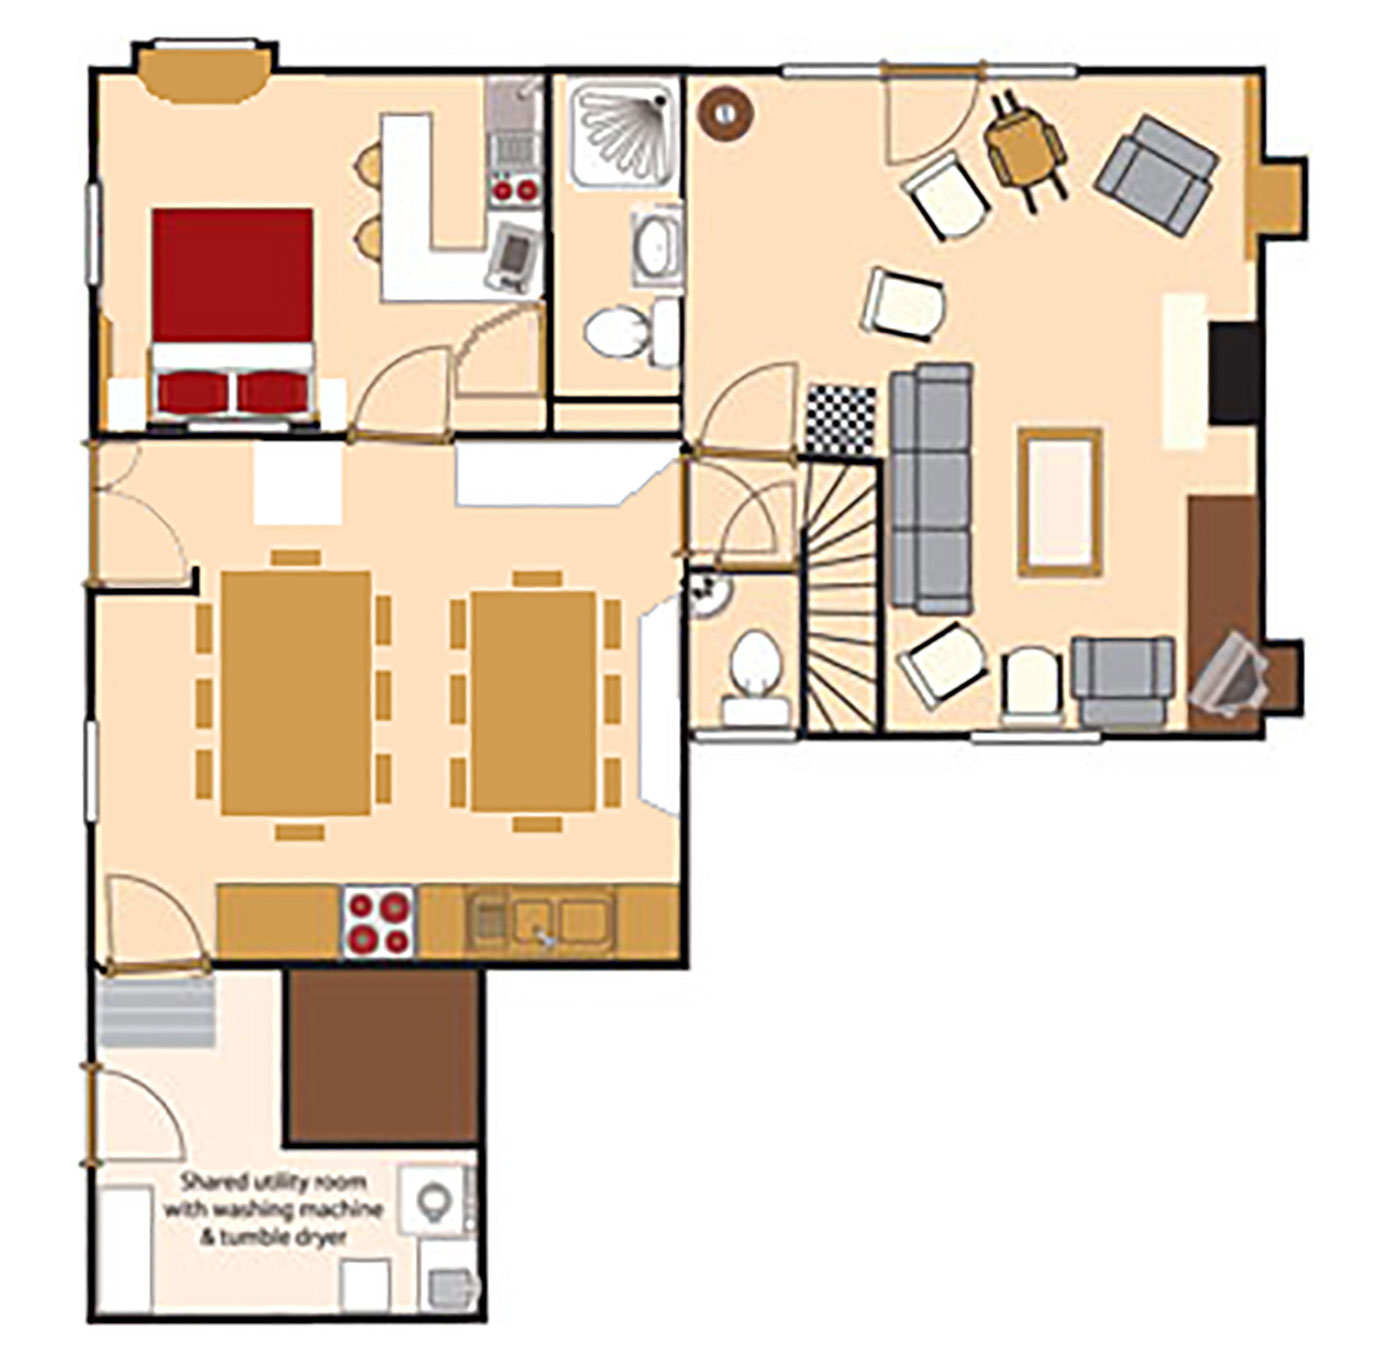 Ground floor plan (not to scale)